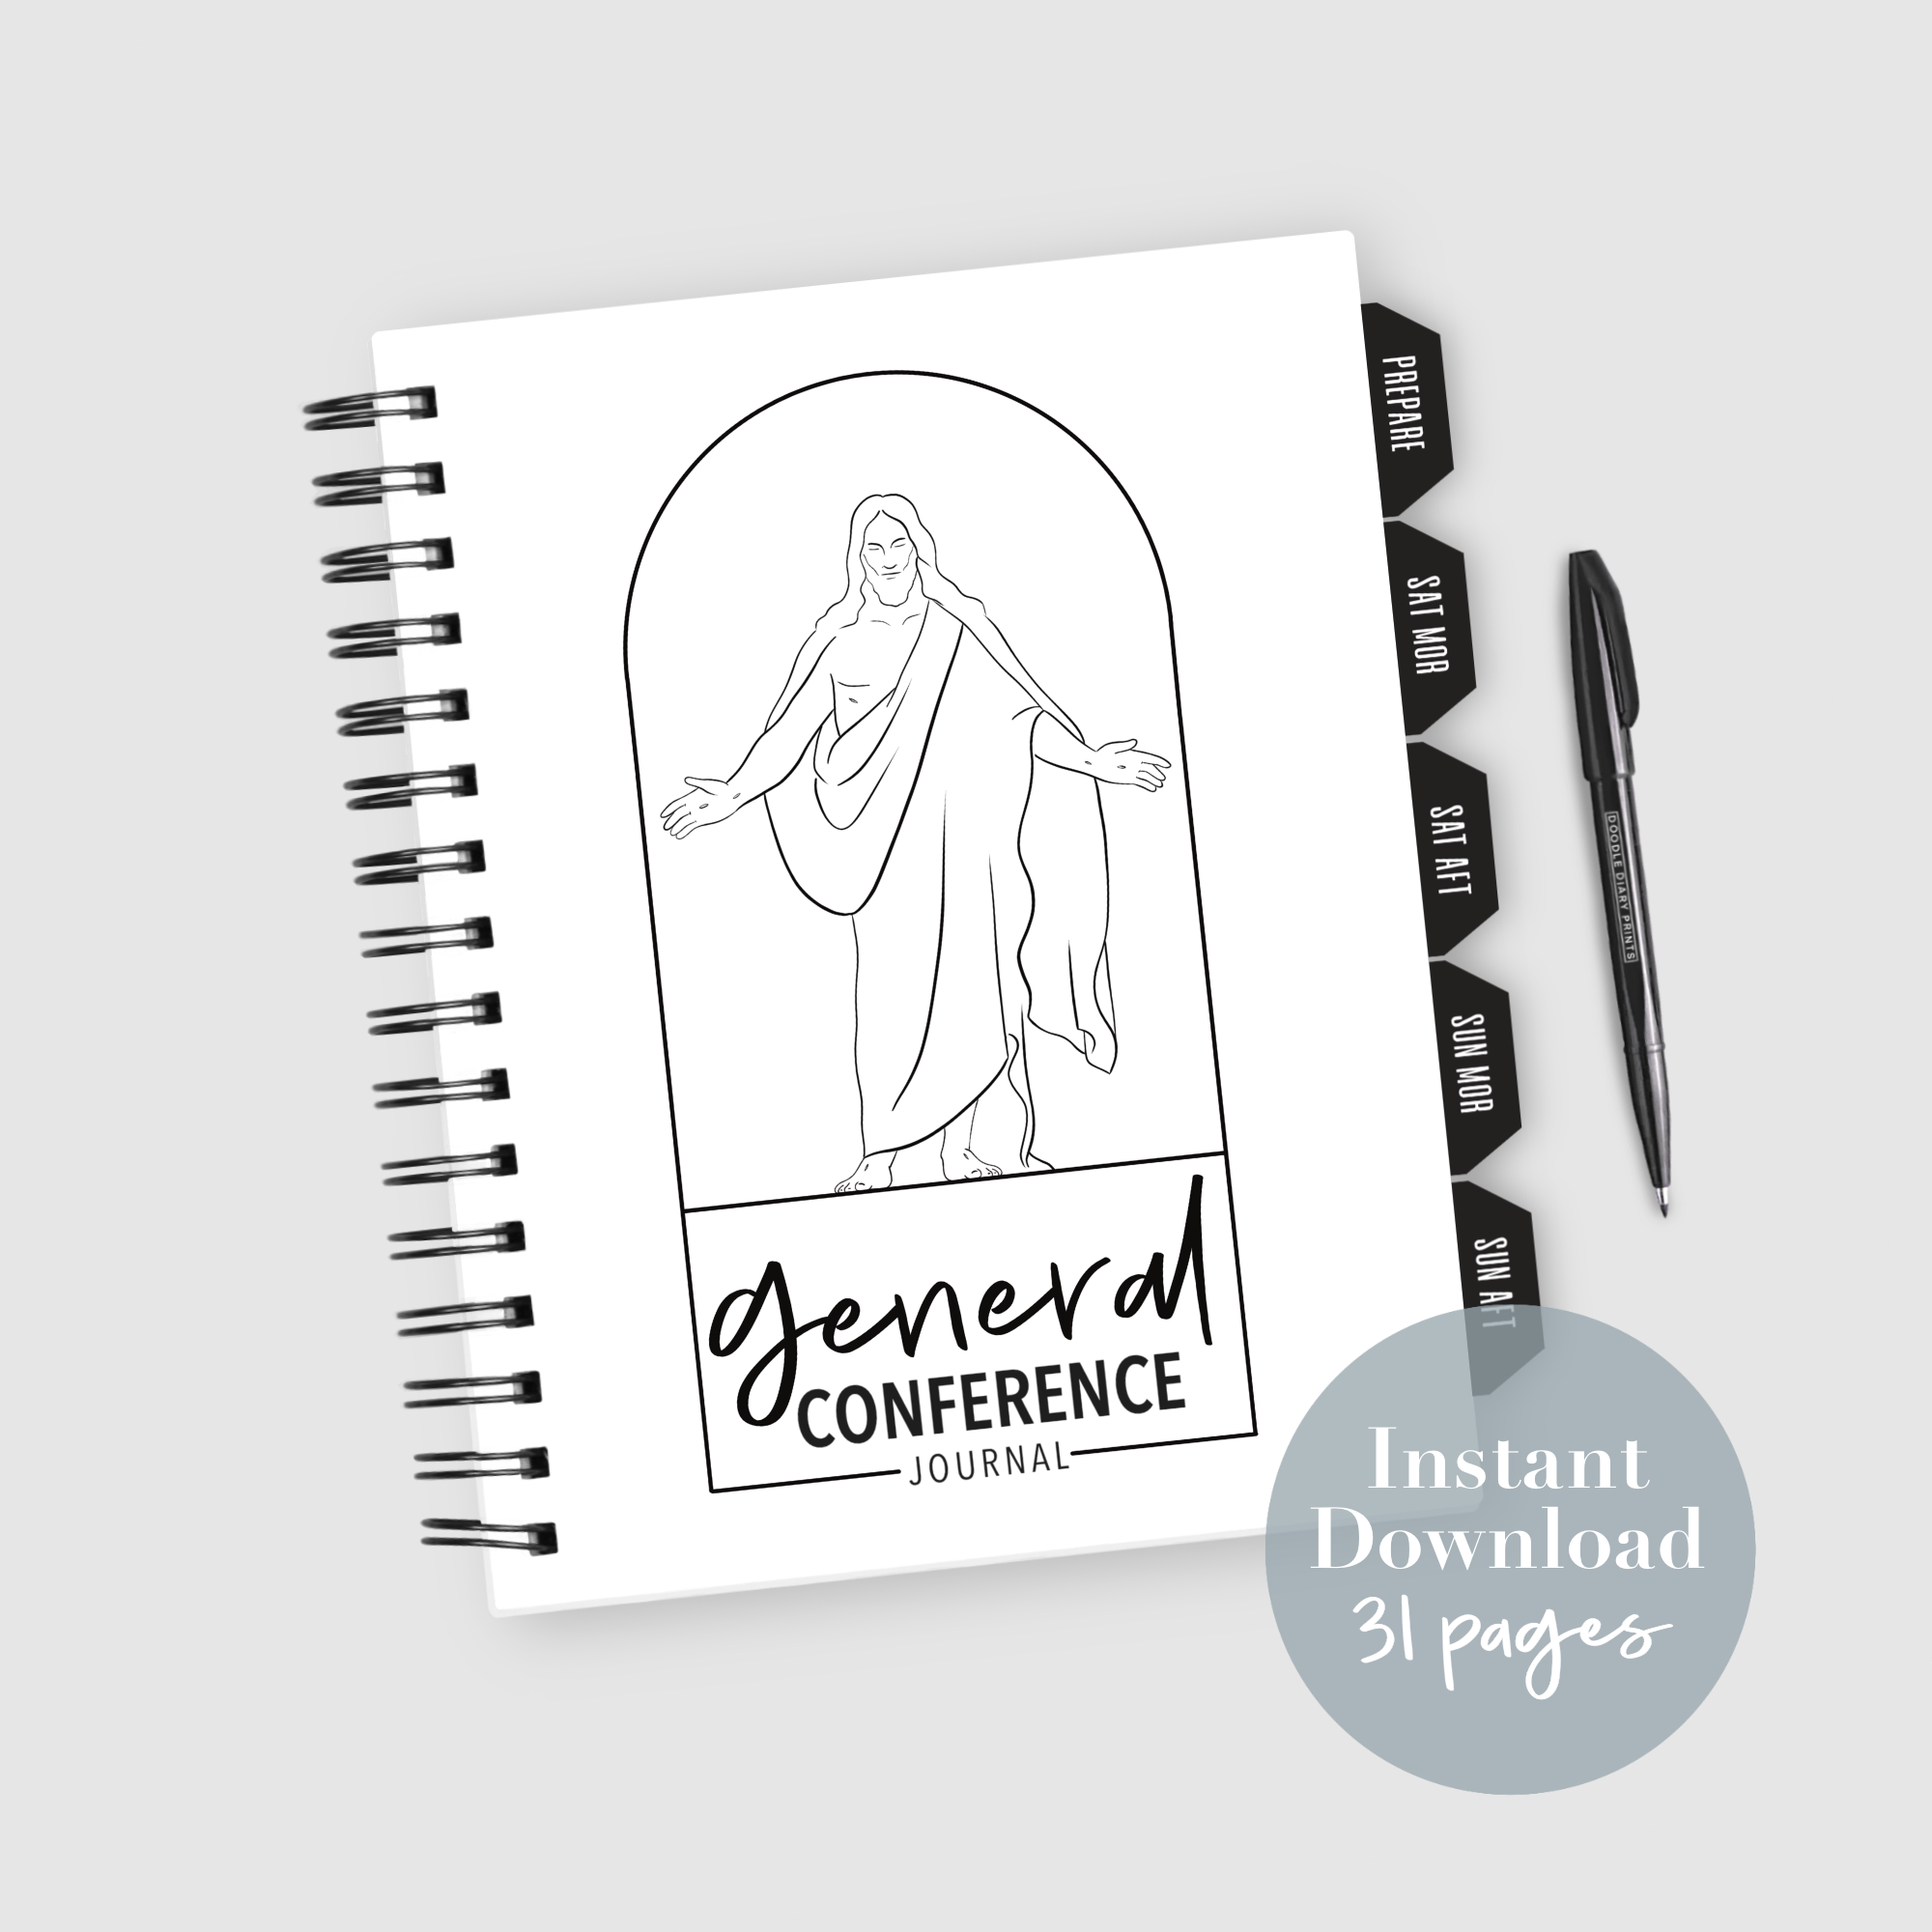 Oct 2020 Lds General Conference Journal Instant Download In 2020 General Conference Lds General Conference General Conference Printable